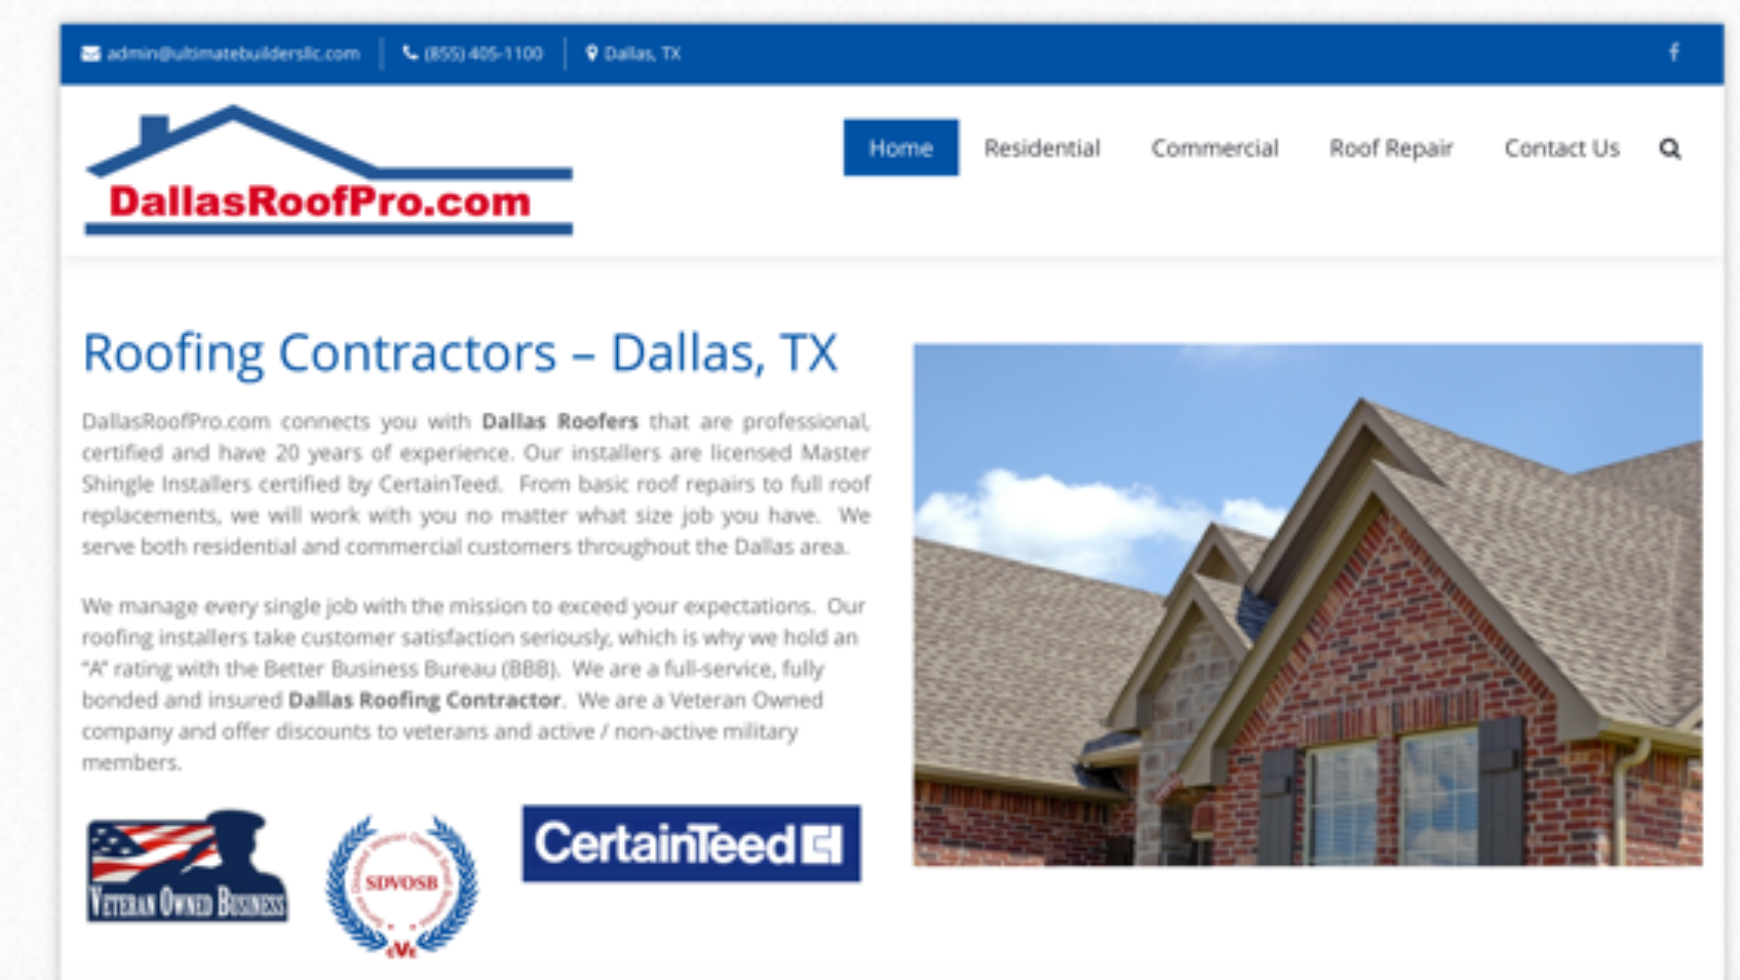 Dallas Roof Pro Website – Dallas, TX